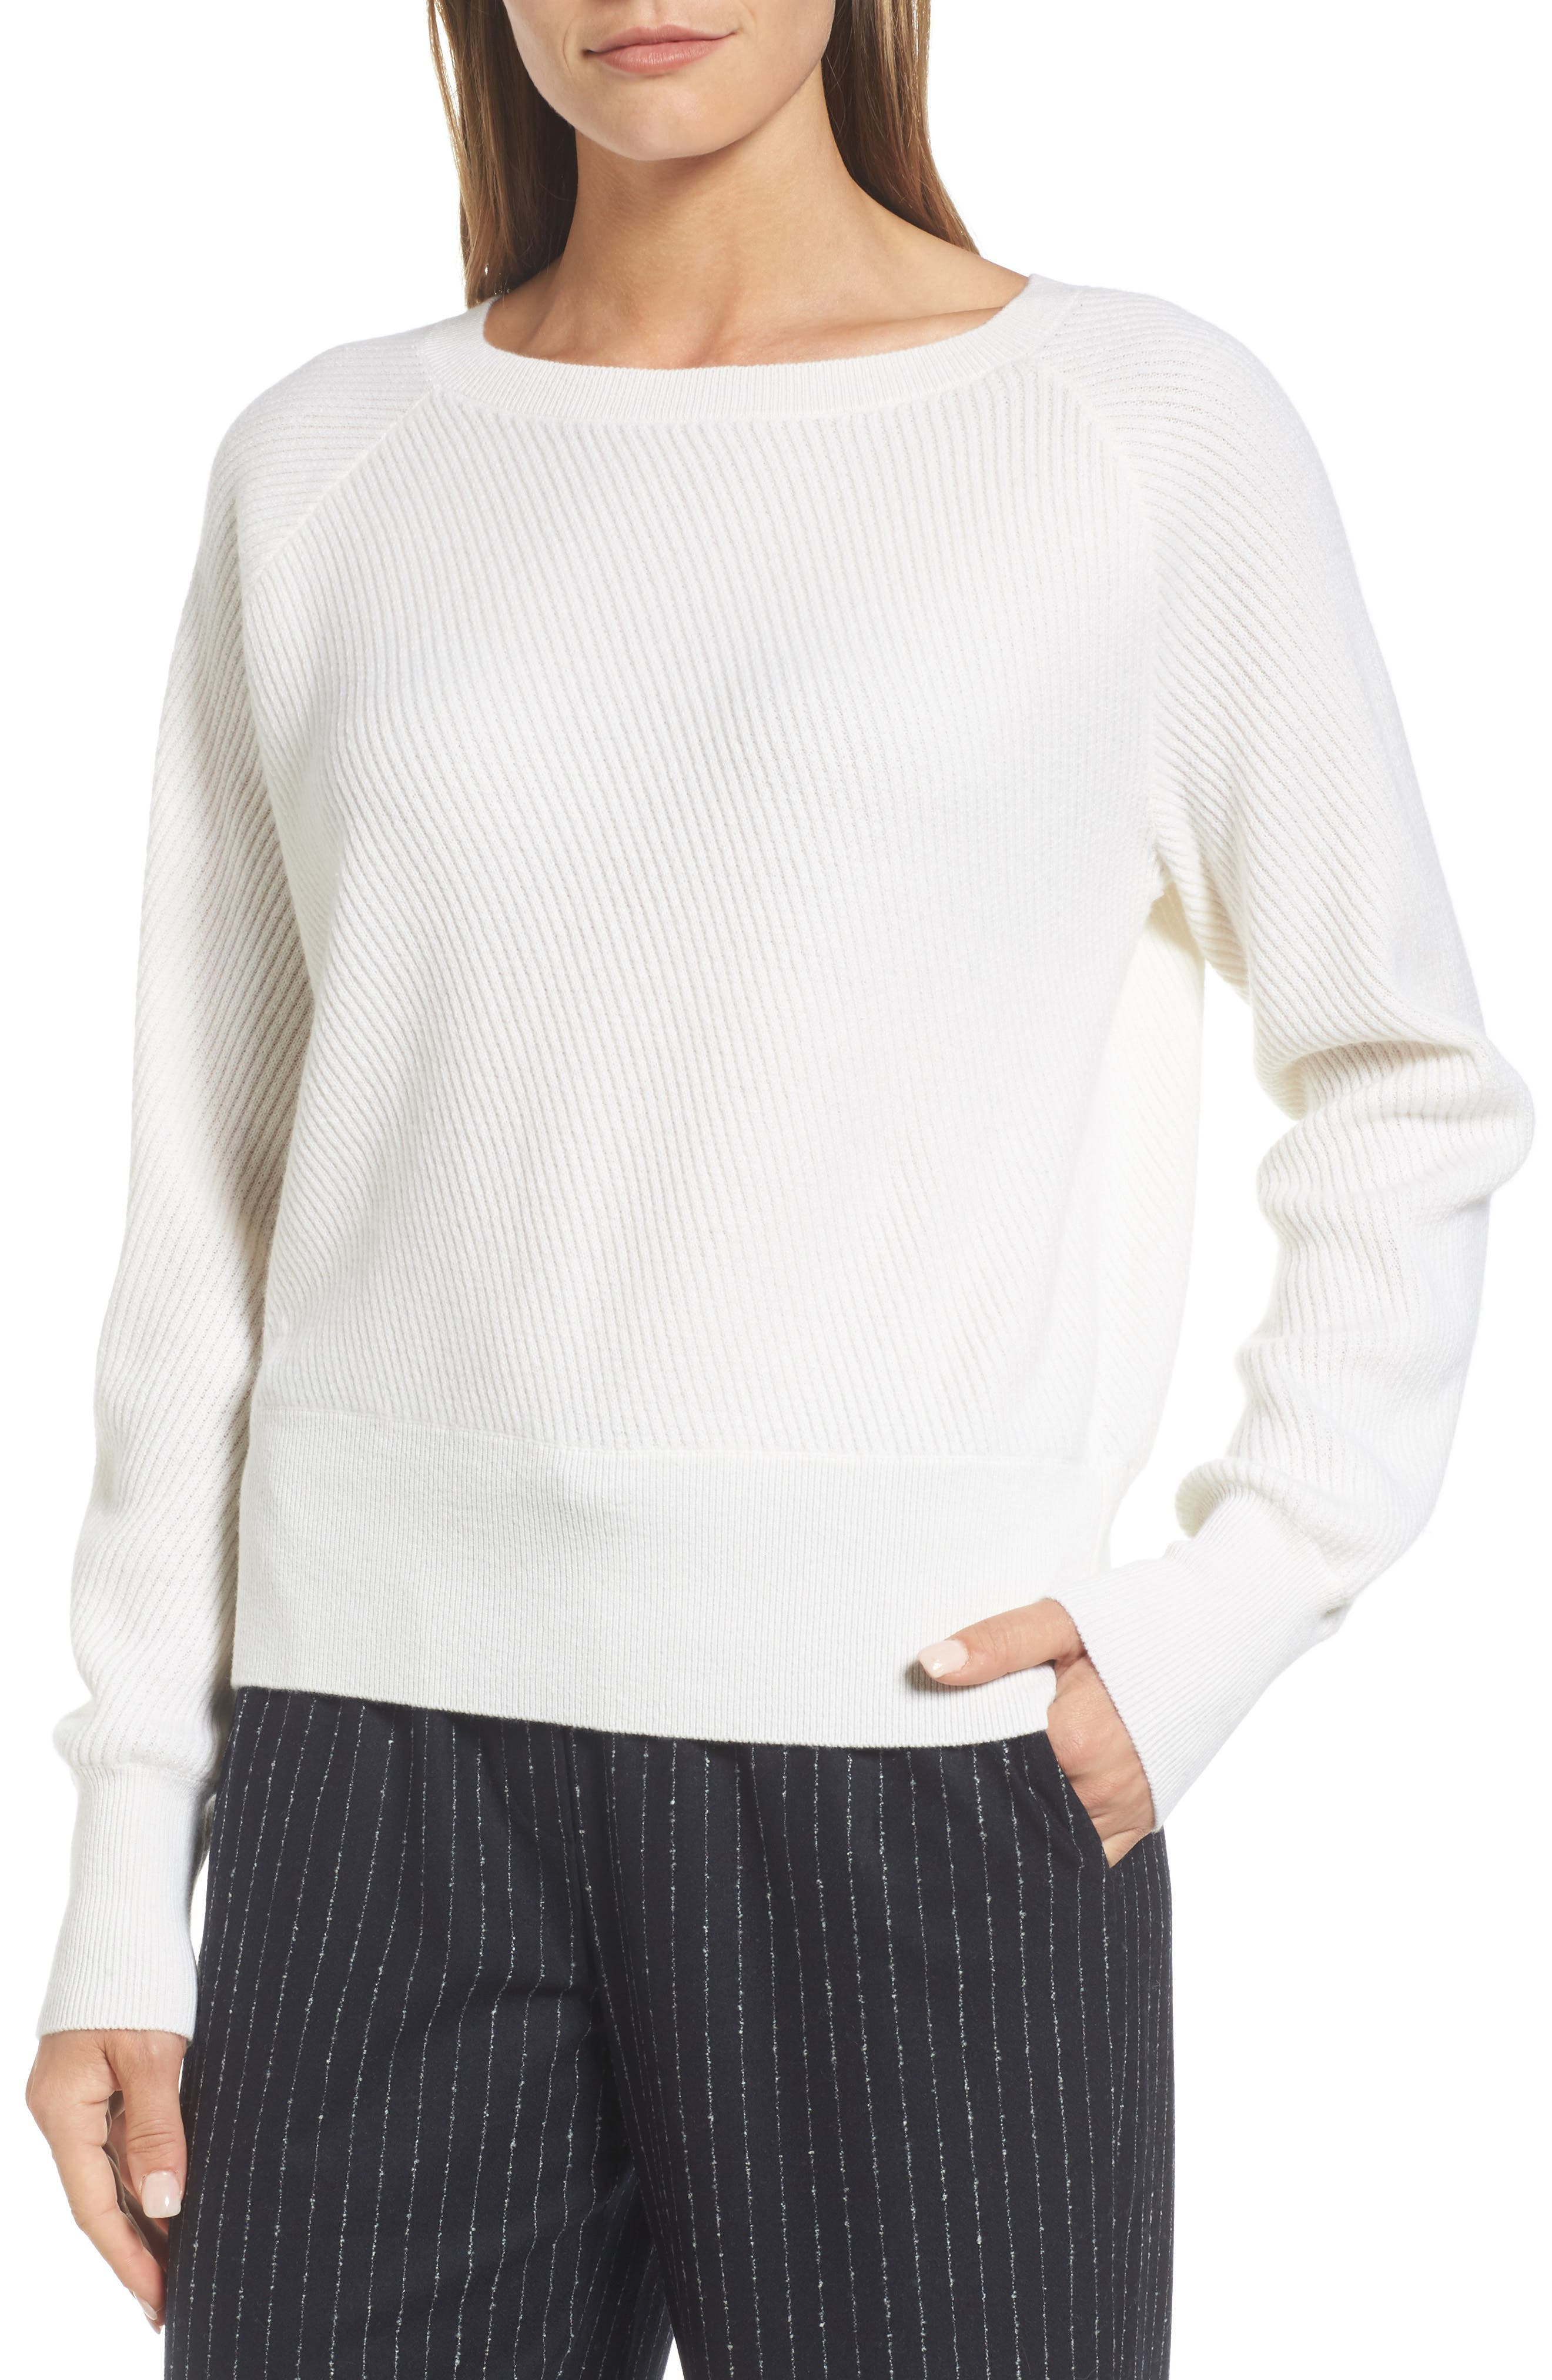 Main Image - Nordstrom Signature Diagonal Ribbed Cashmere Sweater